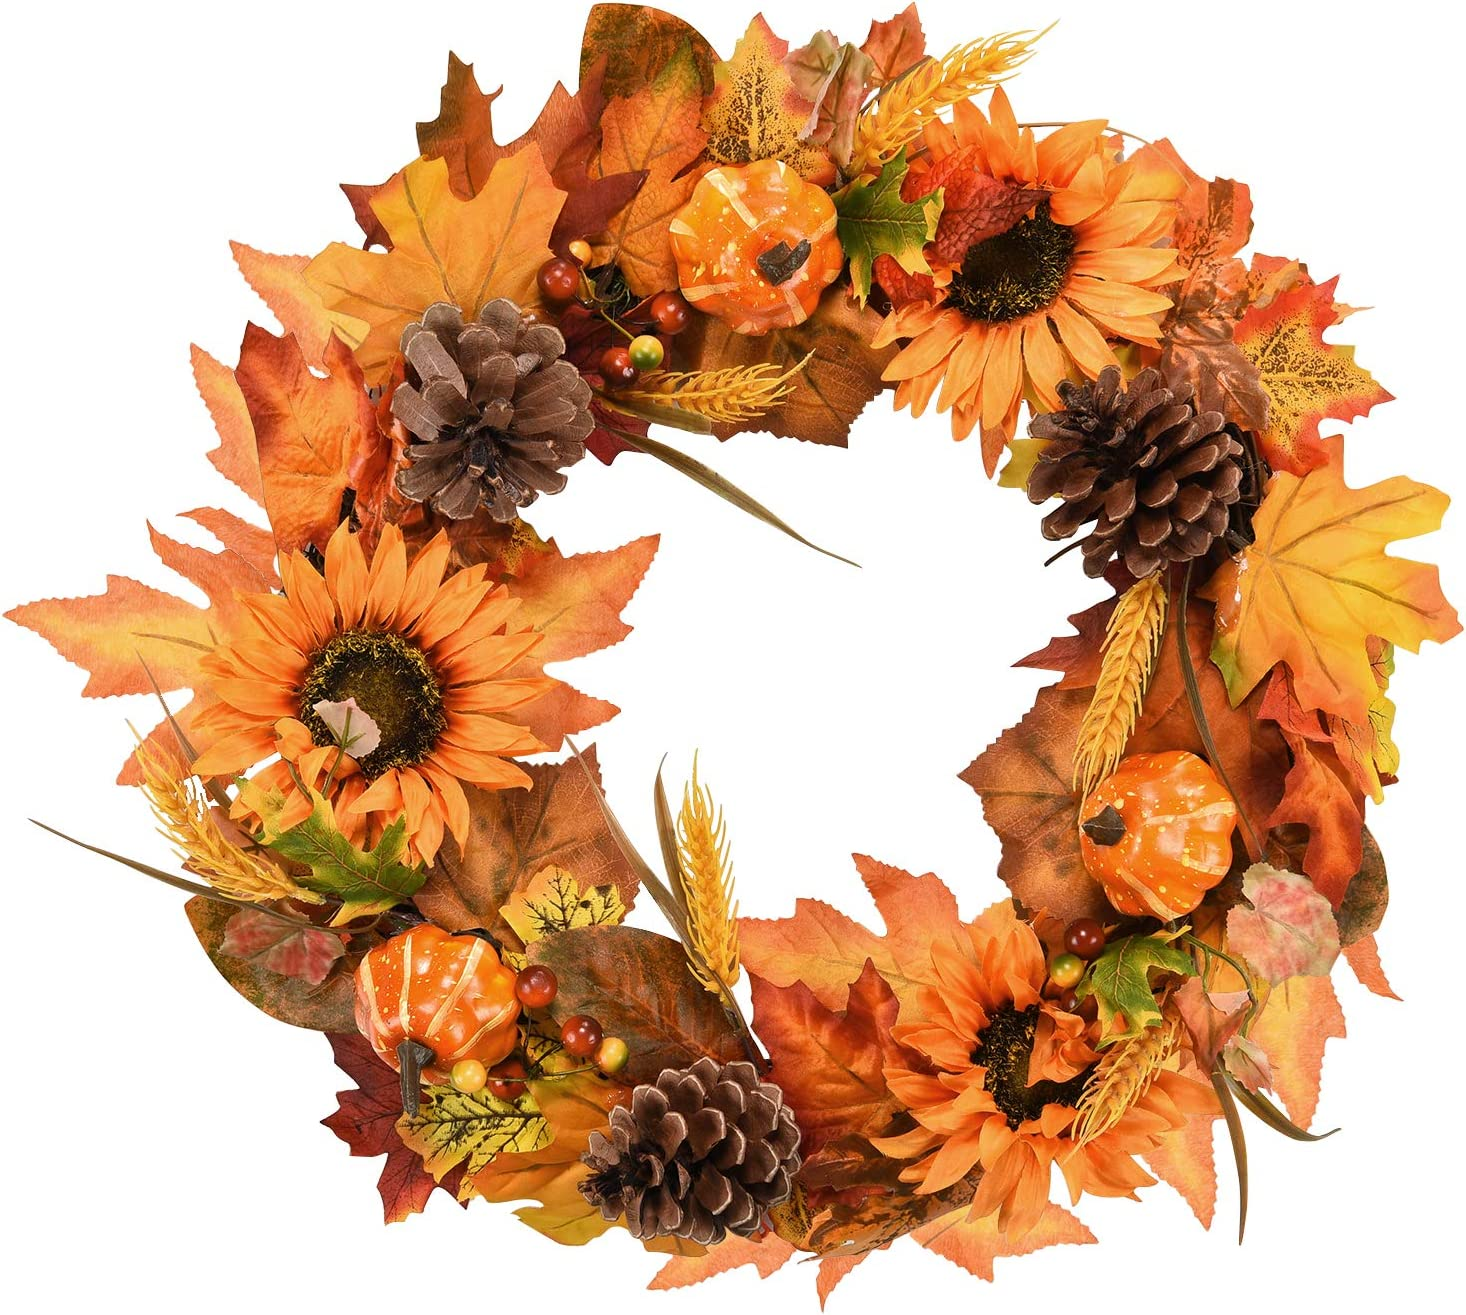 Dolicer Artificial Maple Leaf Wreath Pumpkins Pi Fort Worth Mall with Super beauty product restock quality top! Sunflowers